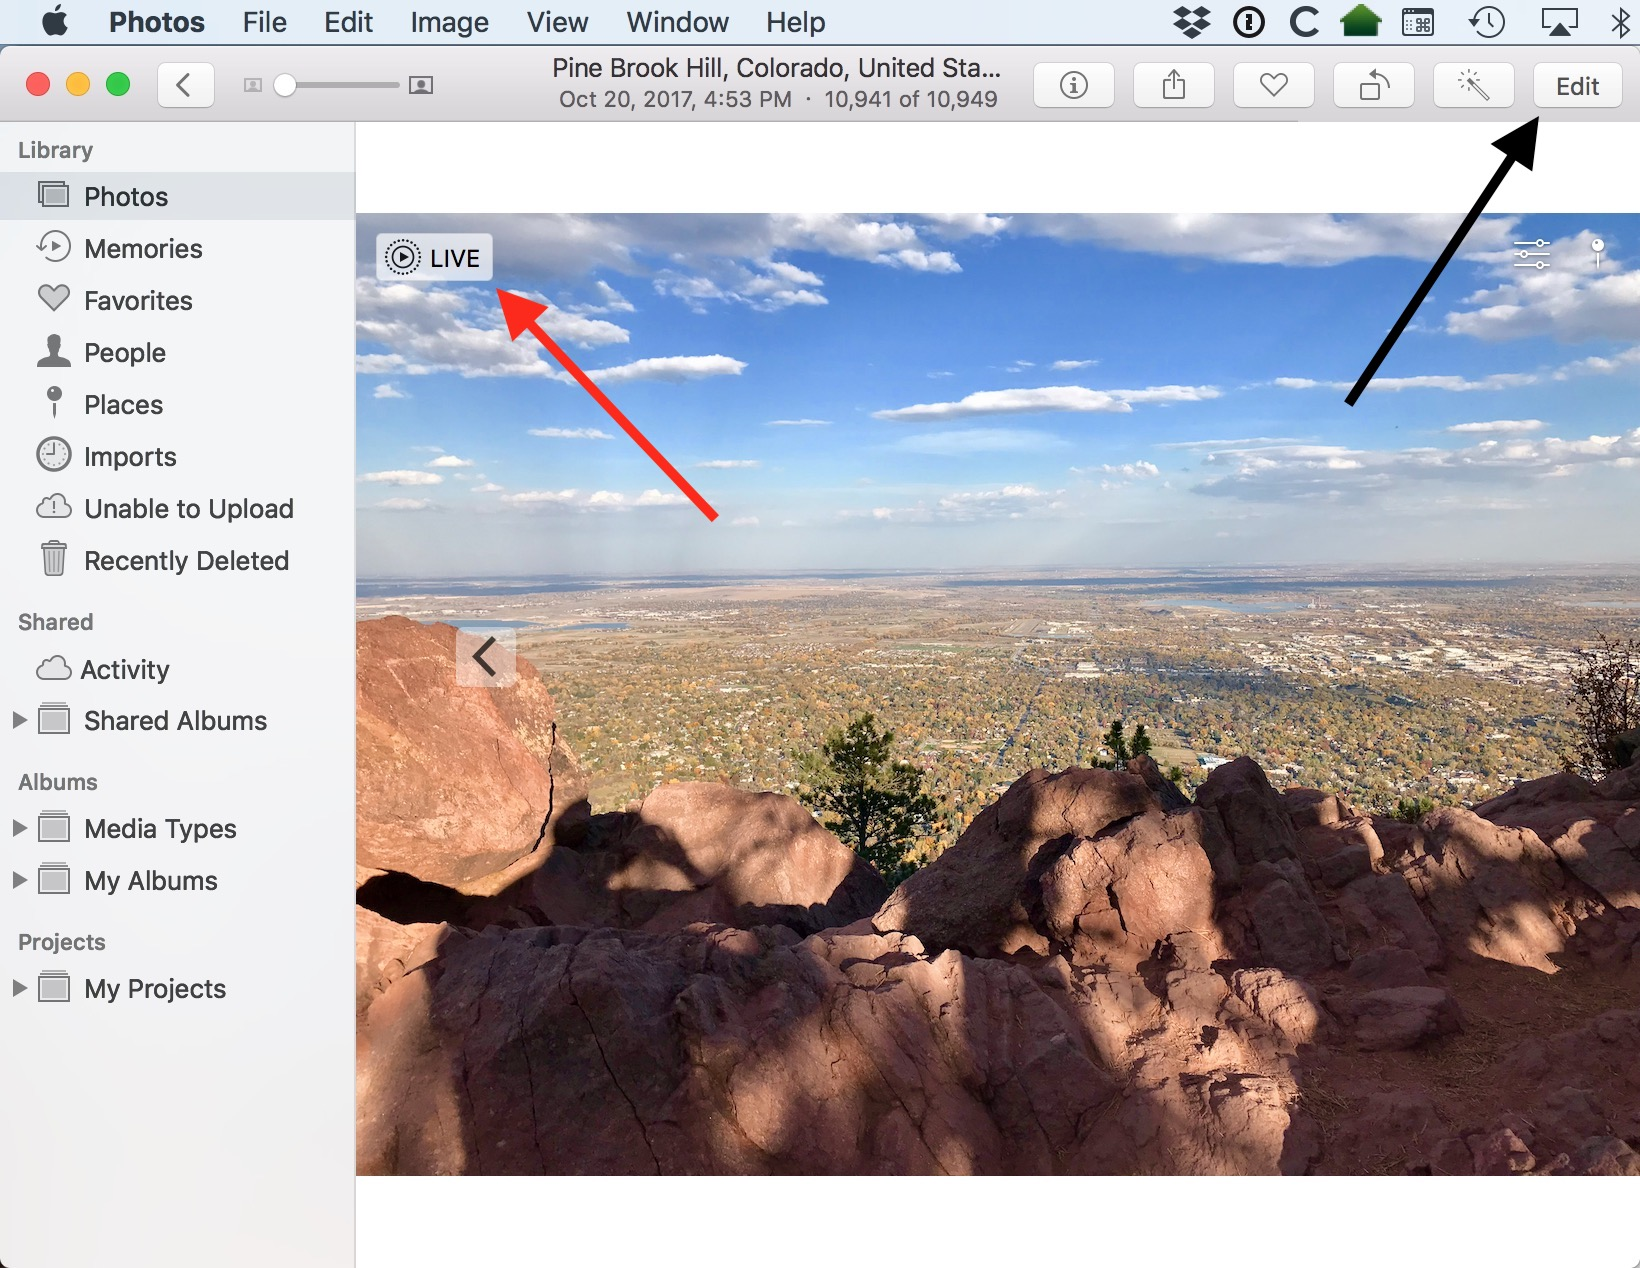 Edit Button in Photos' Window in macOS High Sierra lets you edit your Live Photos